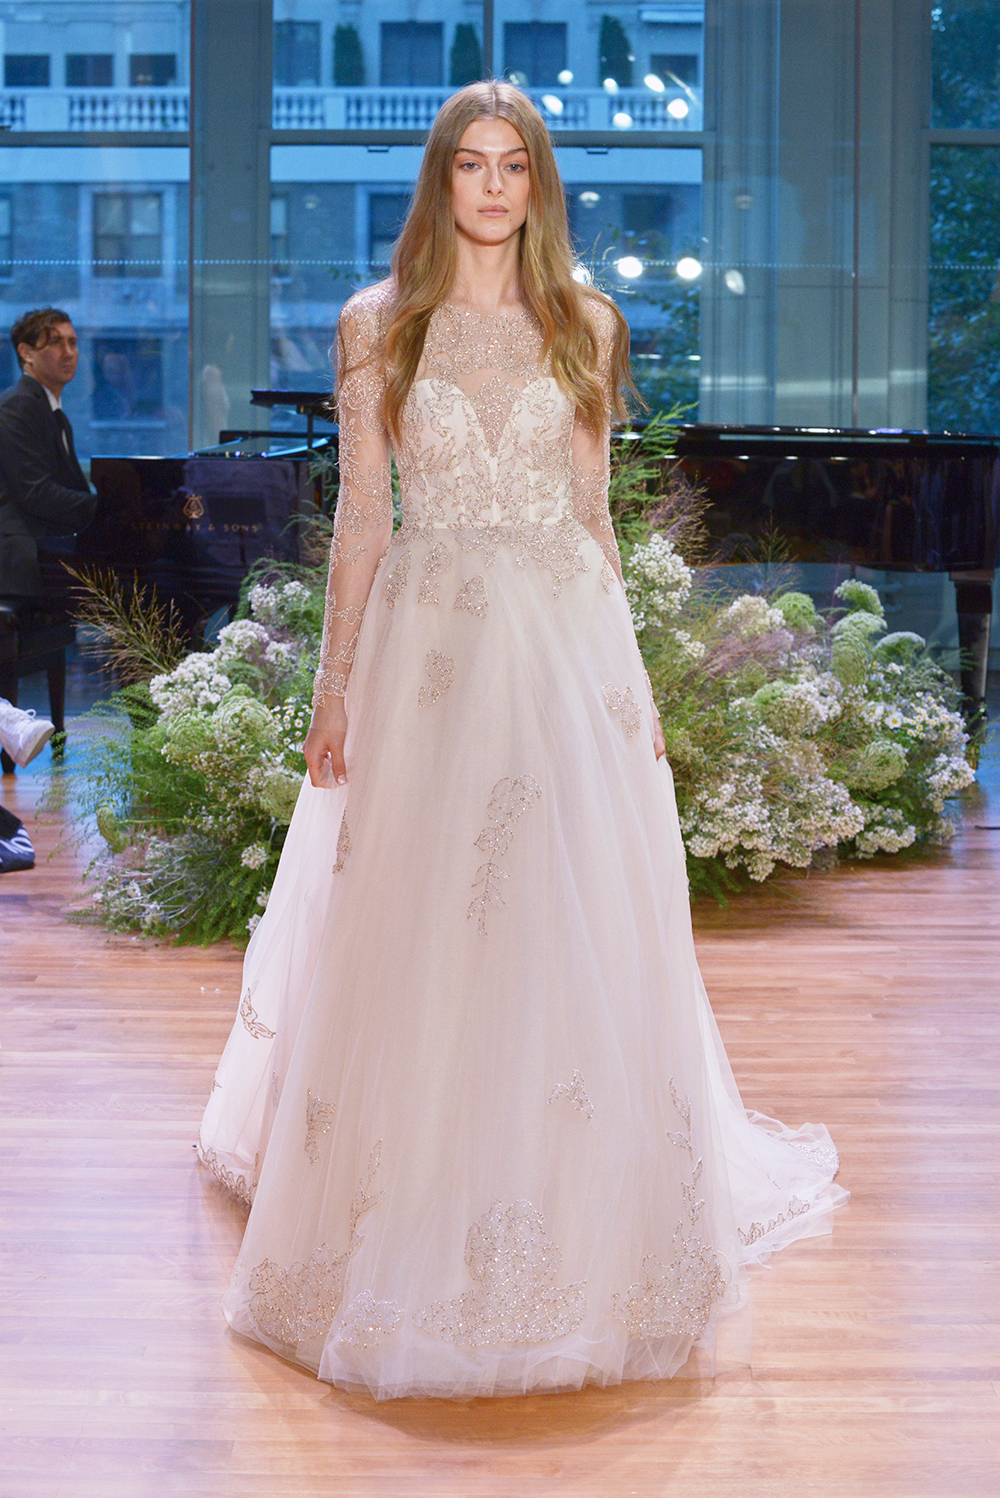 Rhapsody - Monique Lhuillier Fall 2017 Bridal Collection. www.theweddingnotebook.com